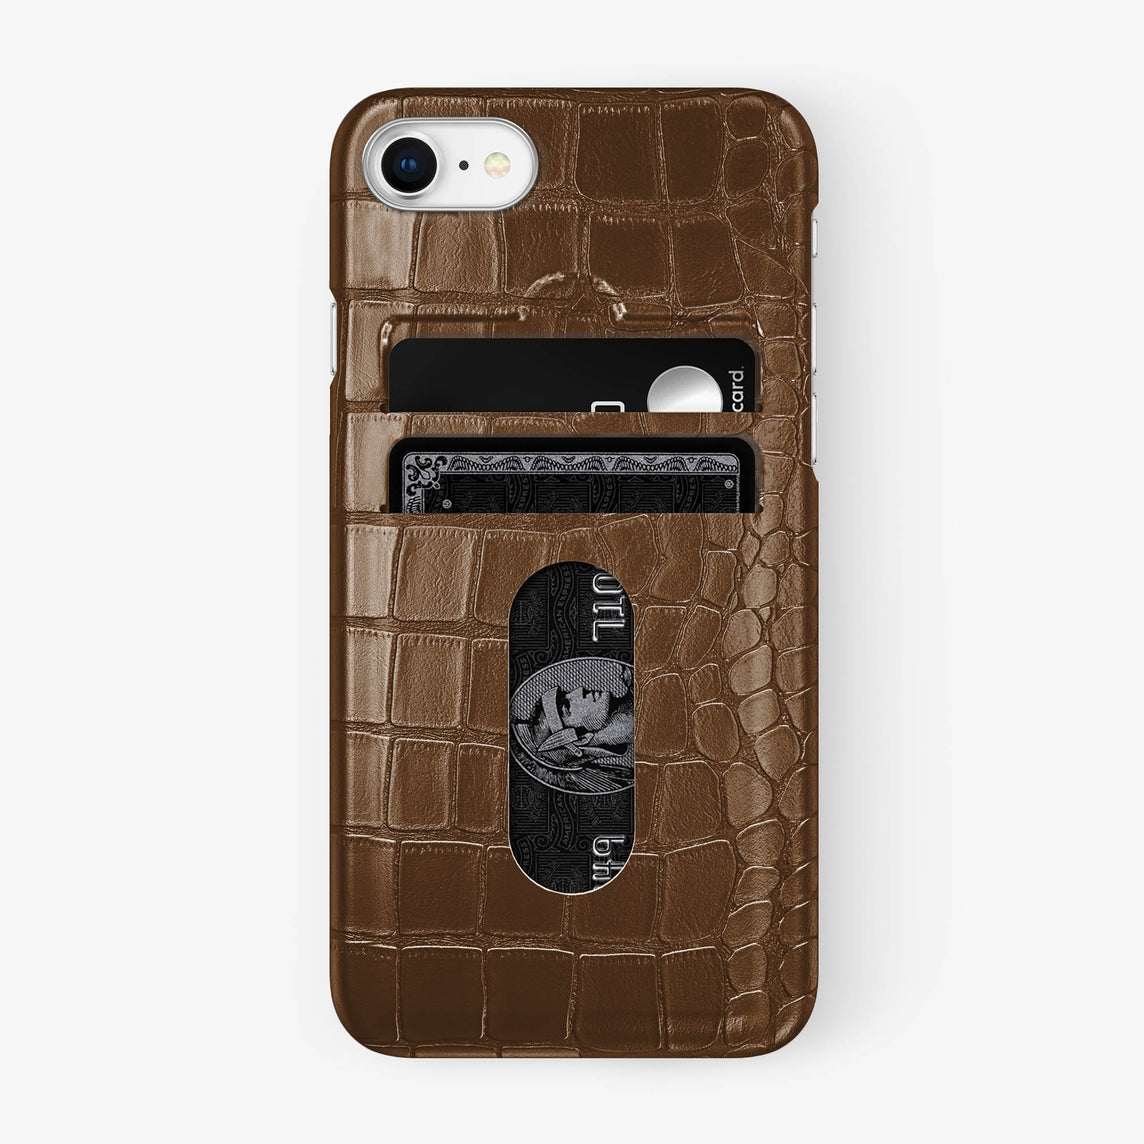 Alligator Card Holder Case iPhone 7/8 | Brown - Stainless Steel - Hadoro